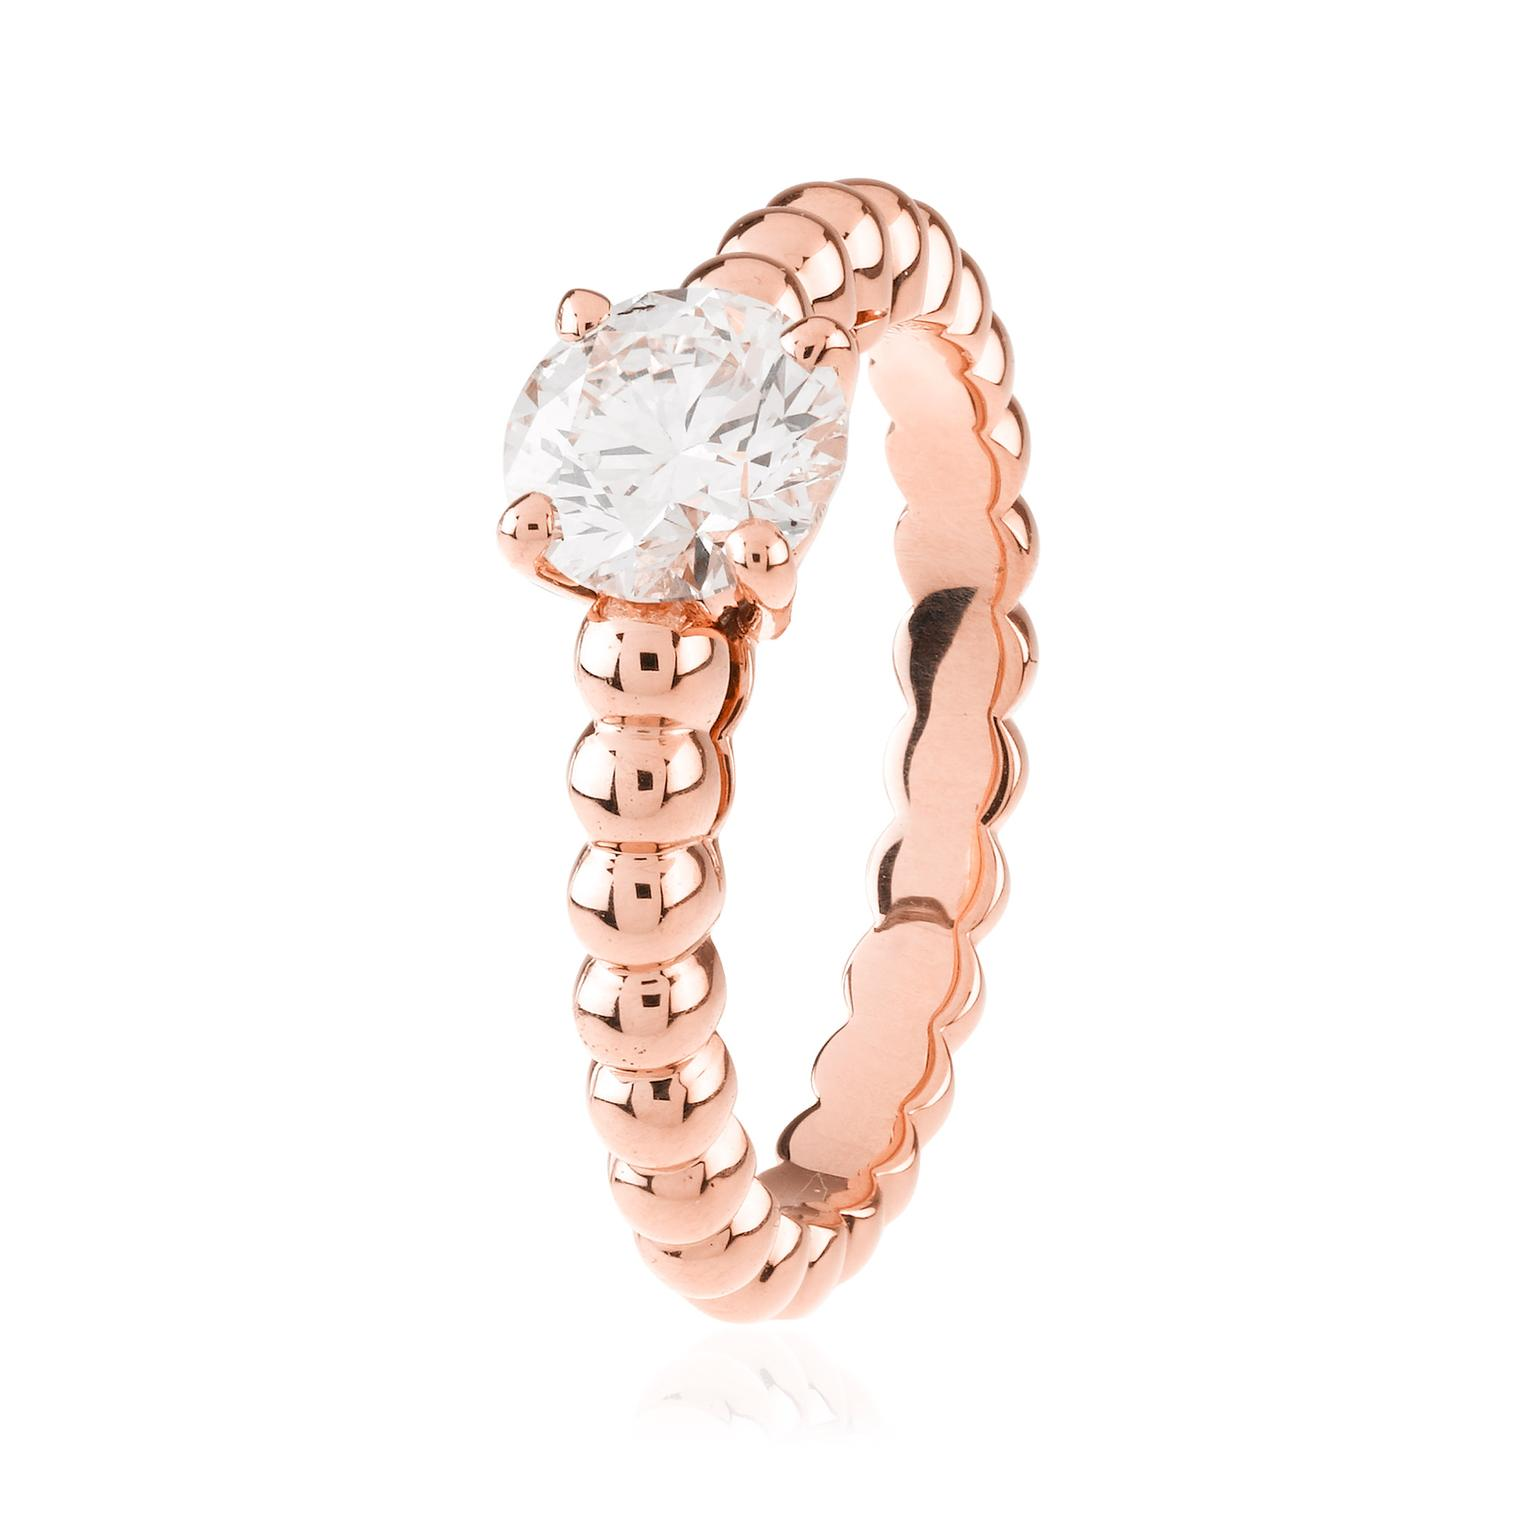 VcA-Perlee-Diamond-Ring-zoom